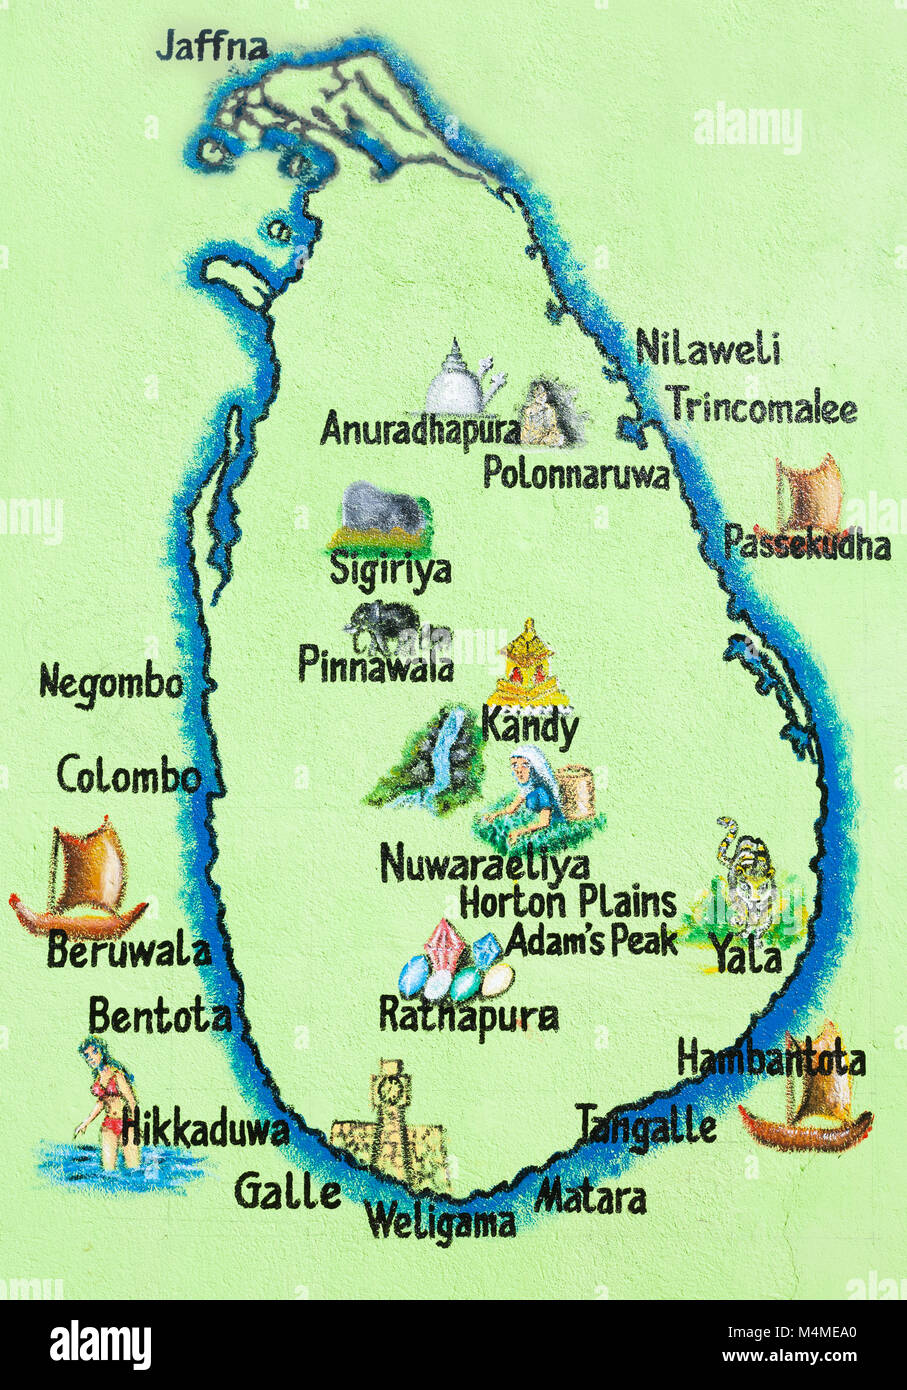 Map Of Asia Sri Lanka.Sri Lanka Asia Hikkaduwa Painted Map Of The Sri Lankan Island